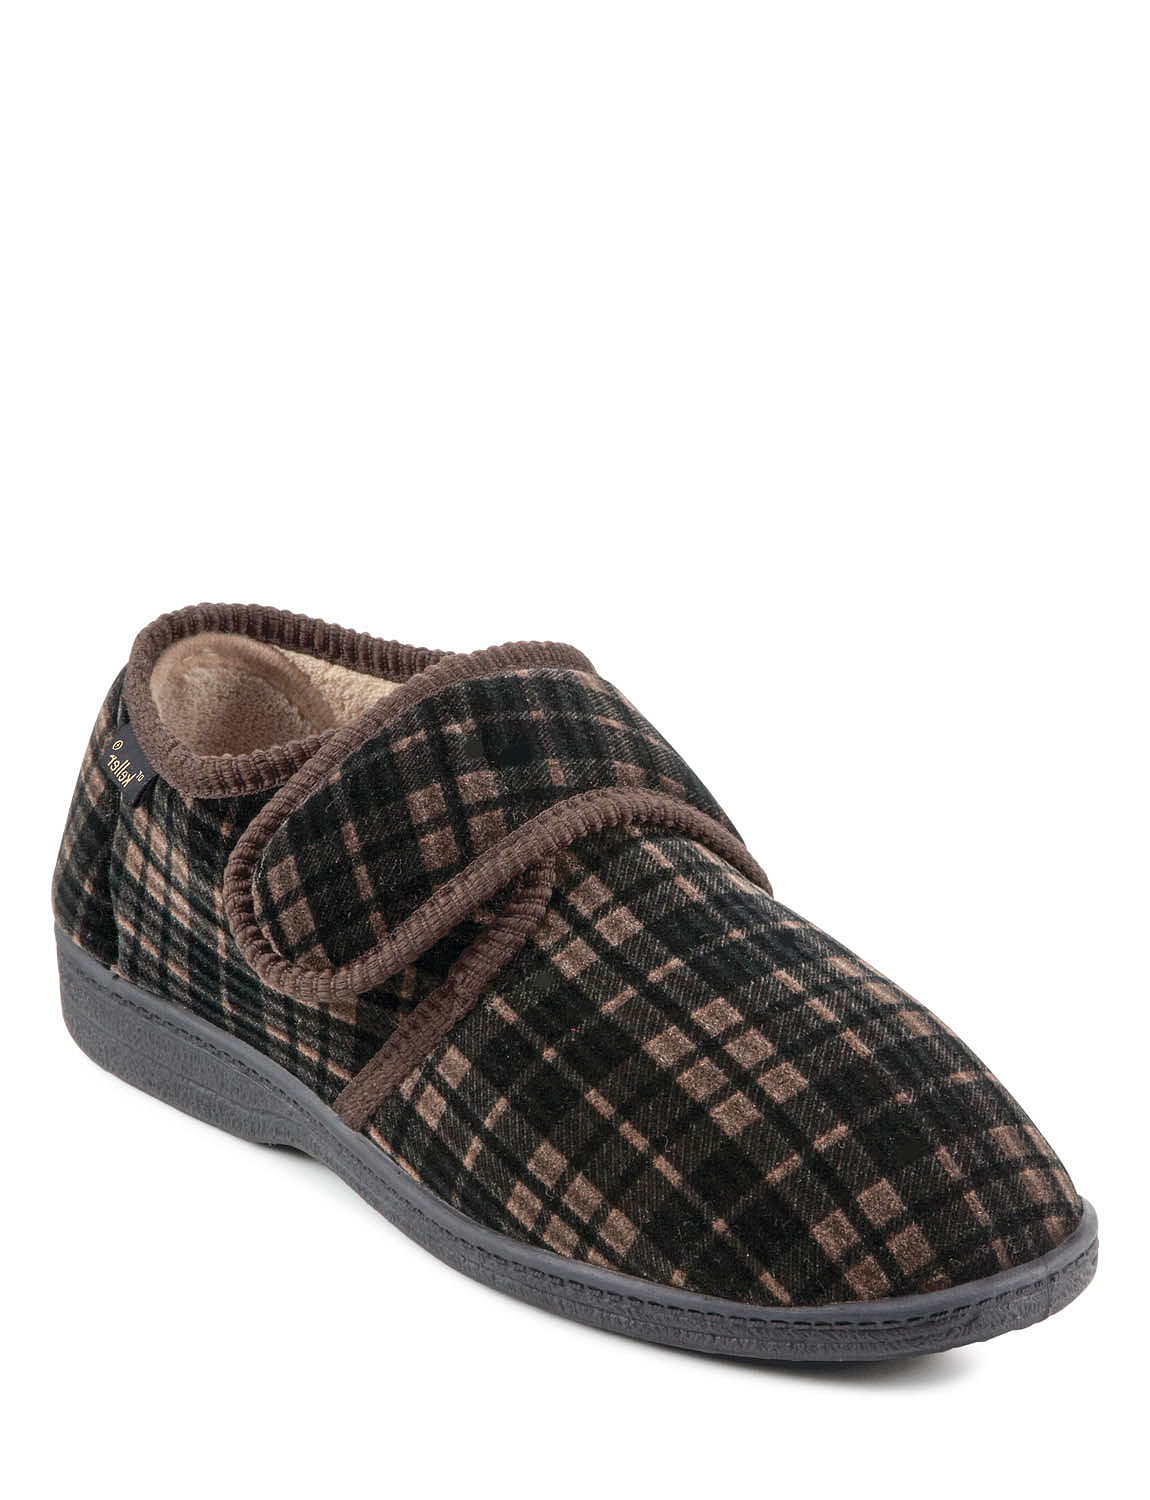 Dr Keller Wide Fit Touch Fasten Slipper - Brown